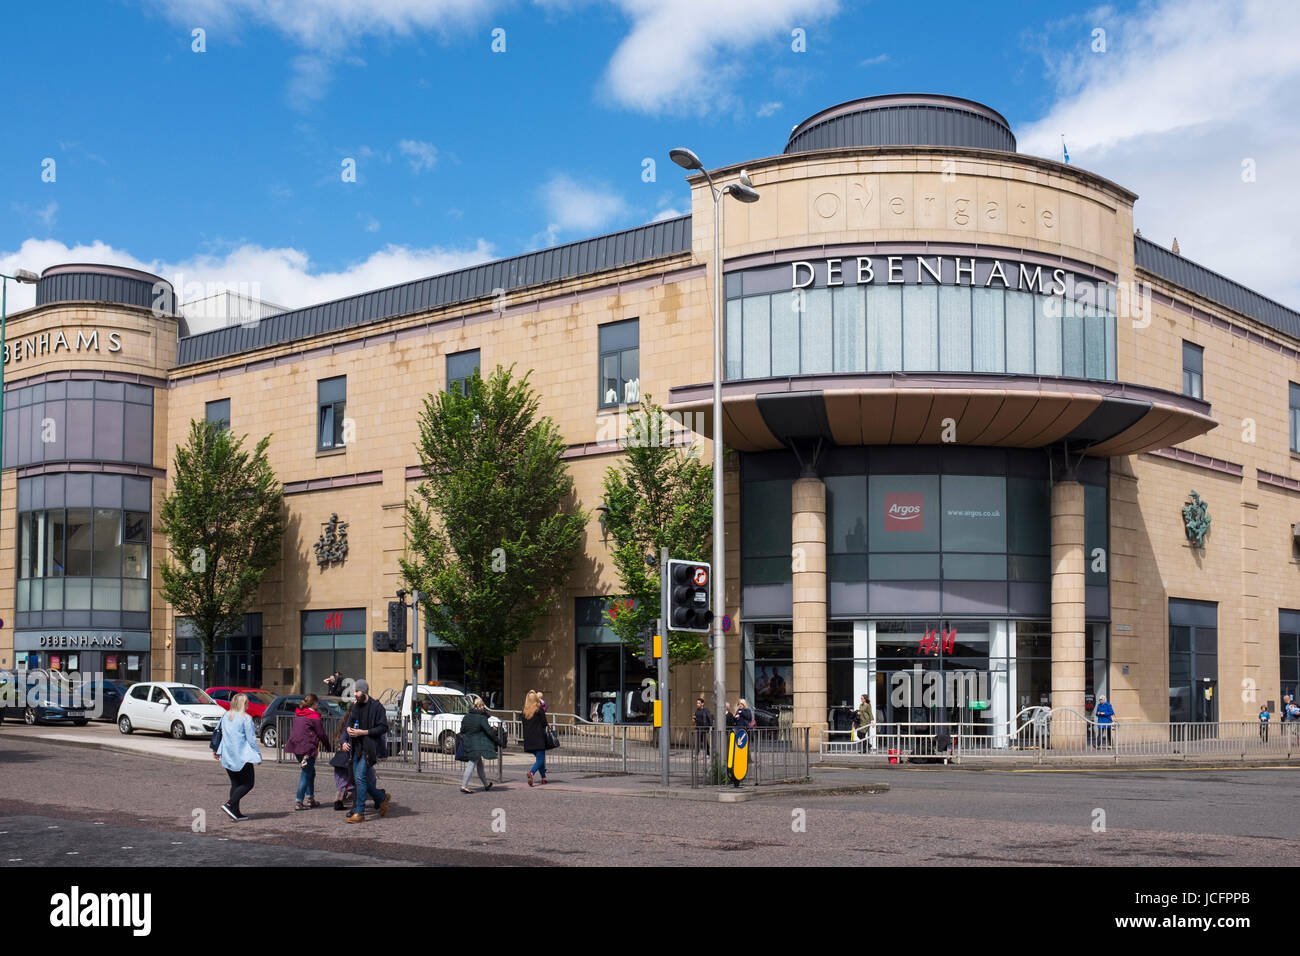 Overgate Shopping Mall in Dundee, Scotland, United Kingdom - Stock Image